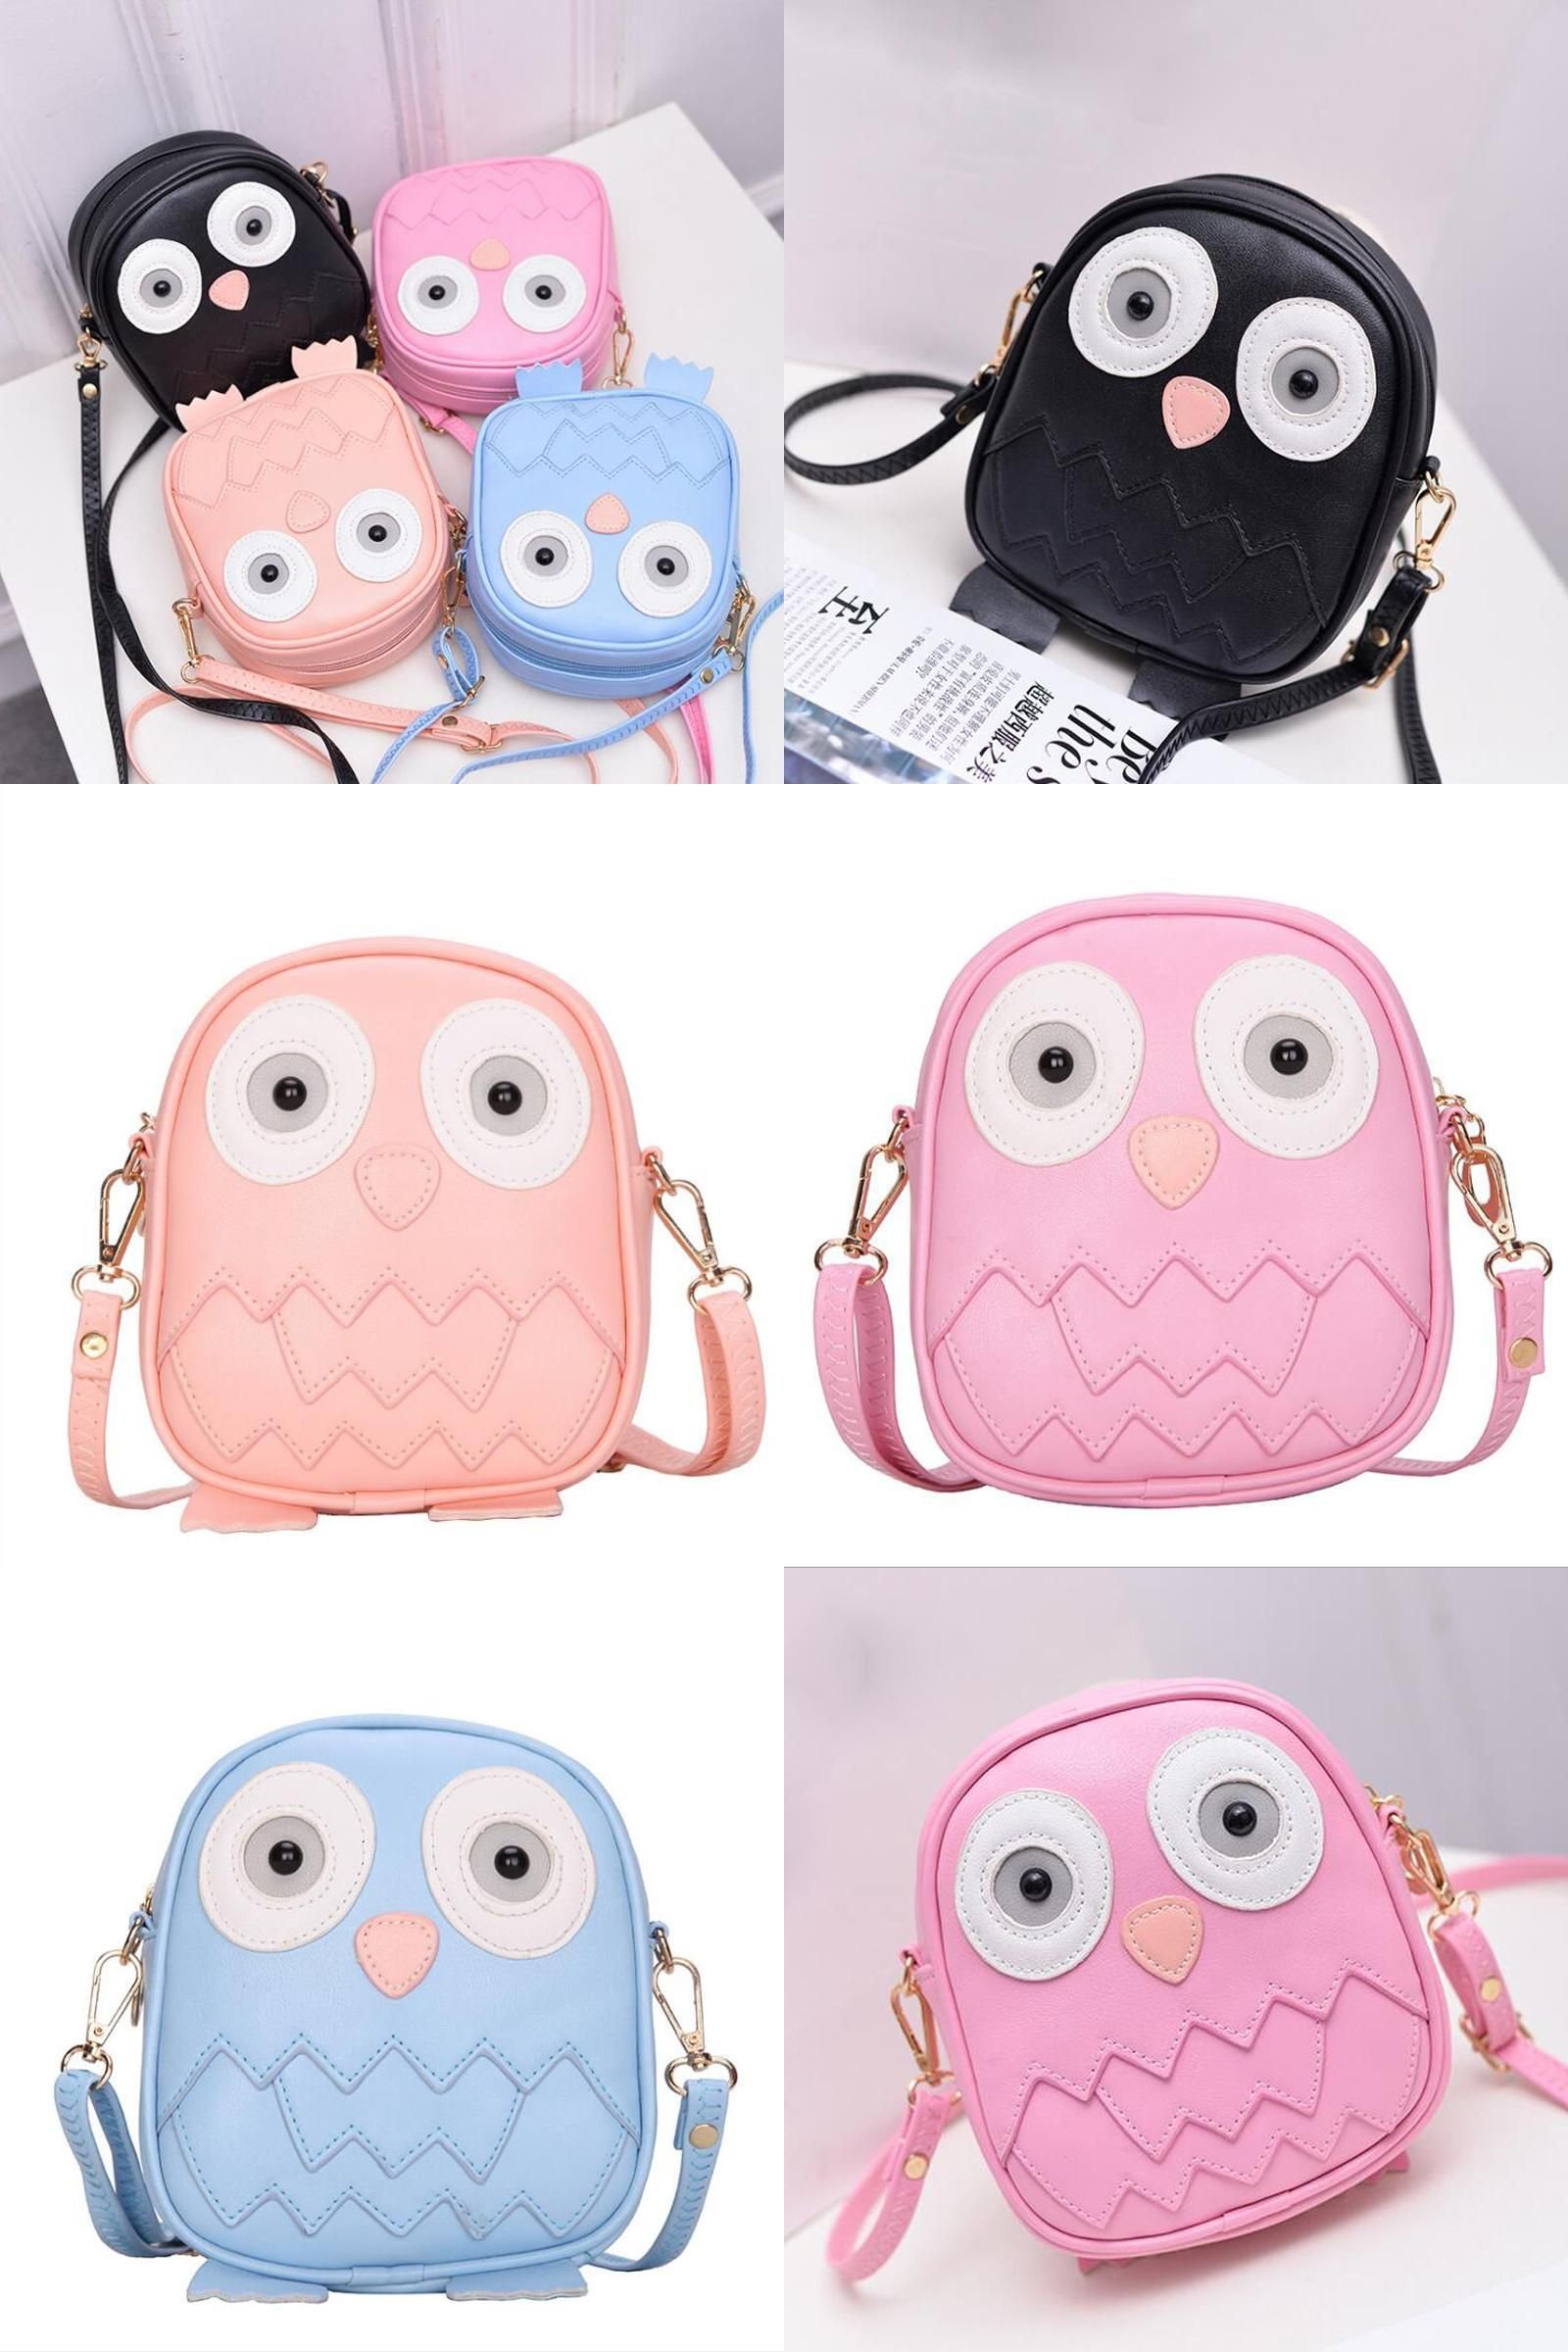 93babb7d59b1  Visit to Buy  QZH 2017 Summer Kids Girls Messenger Bags Cartoon Mini Cute  School